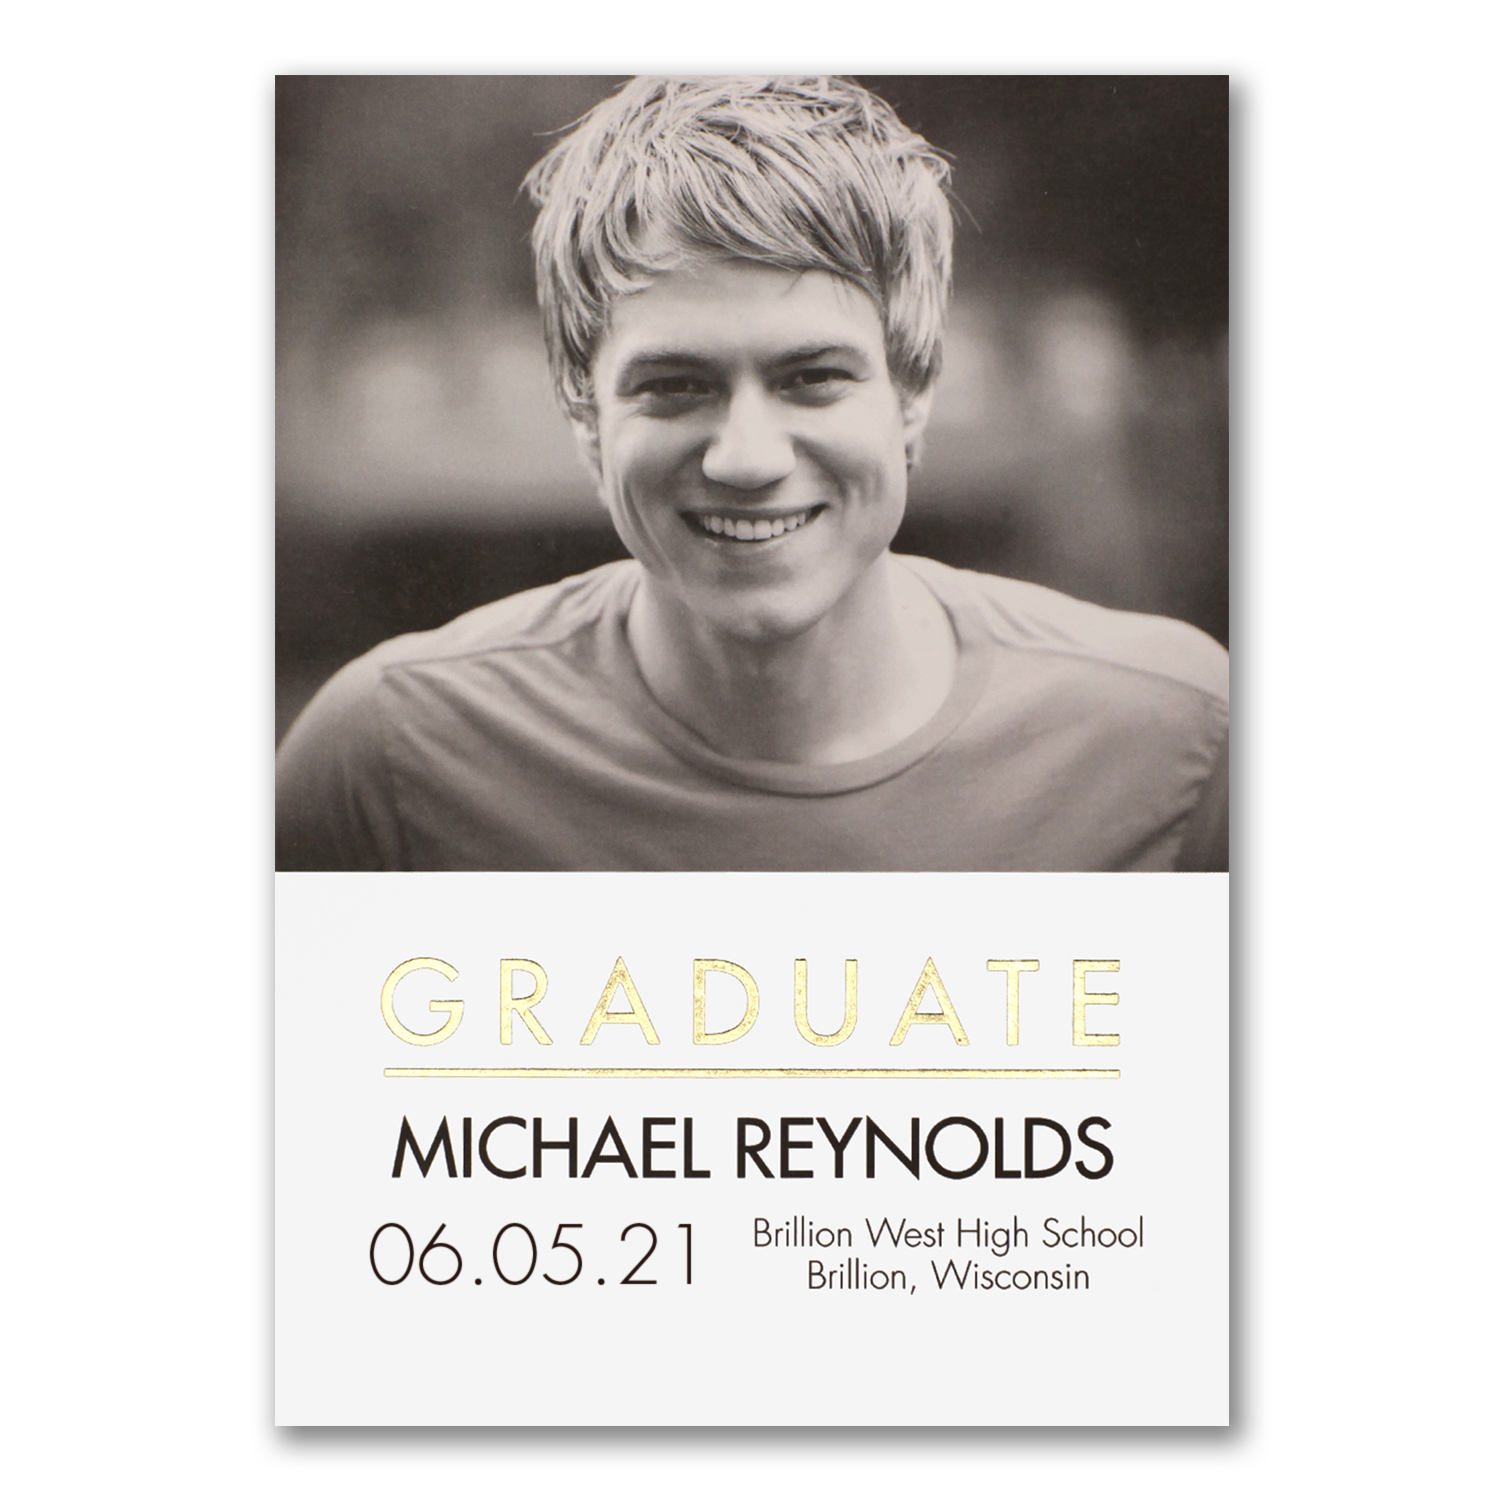 ready to shine gold and white photo graduation announcement